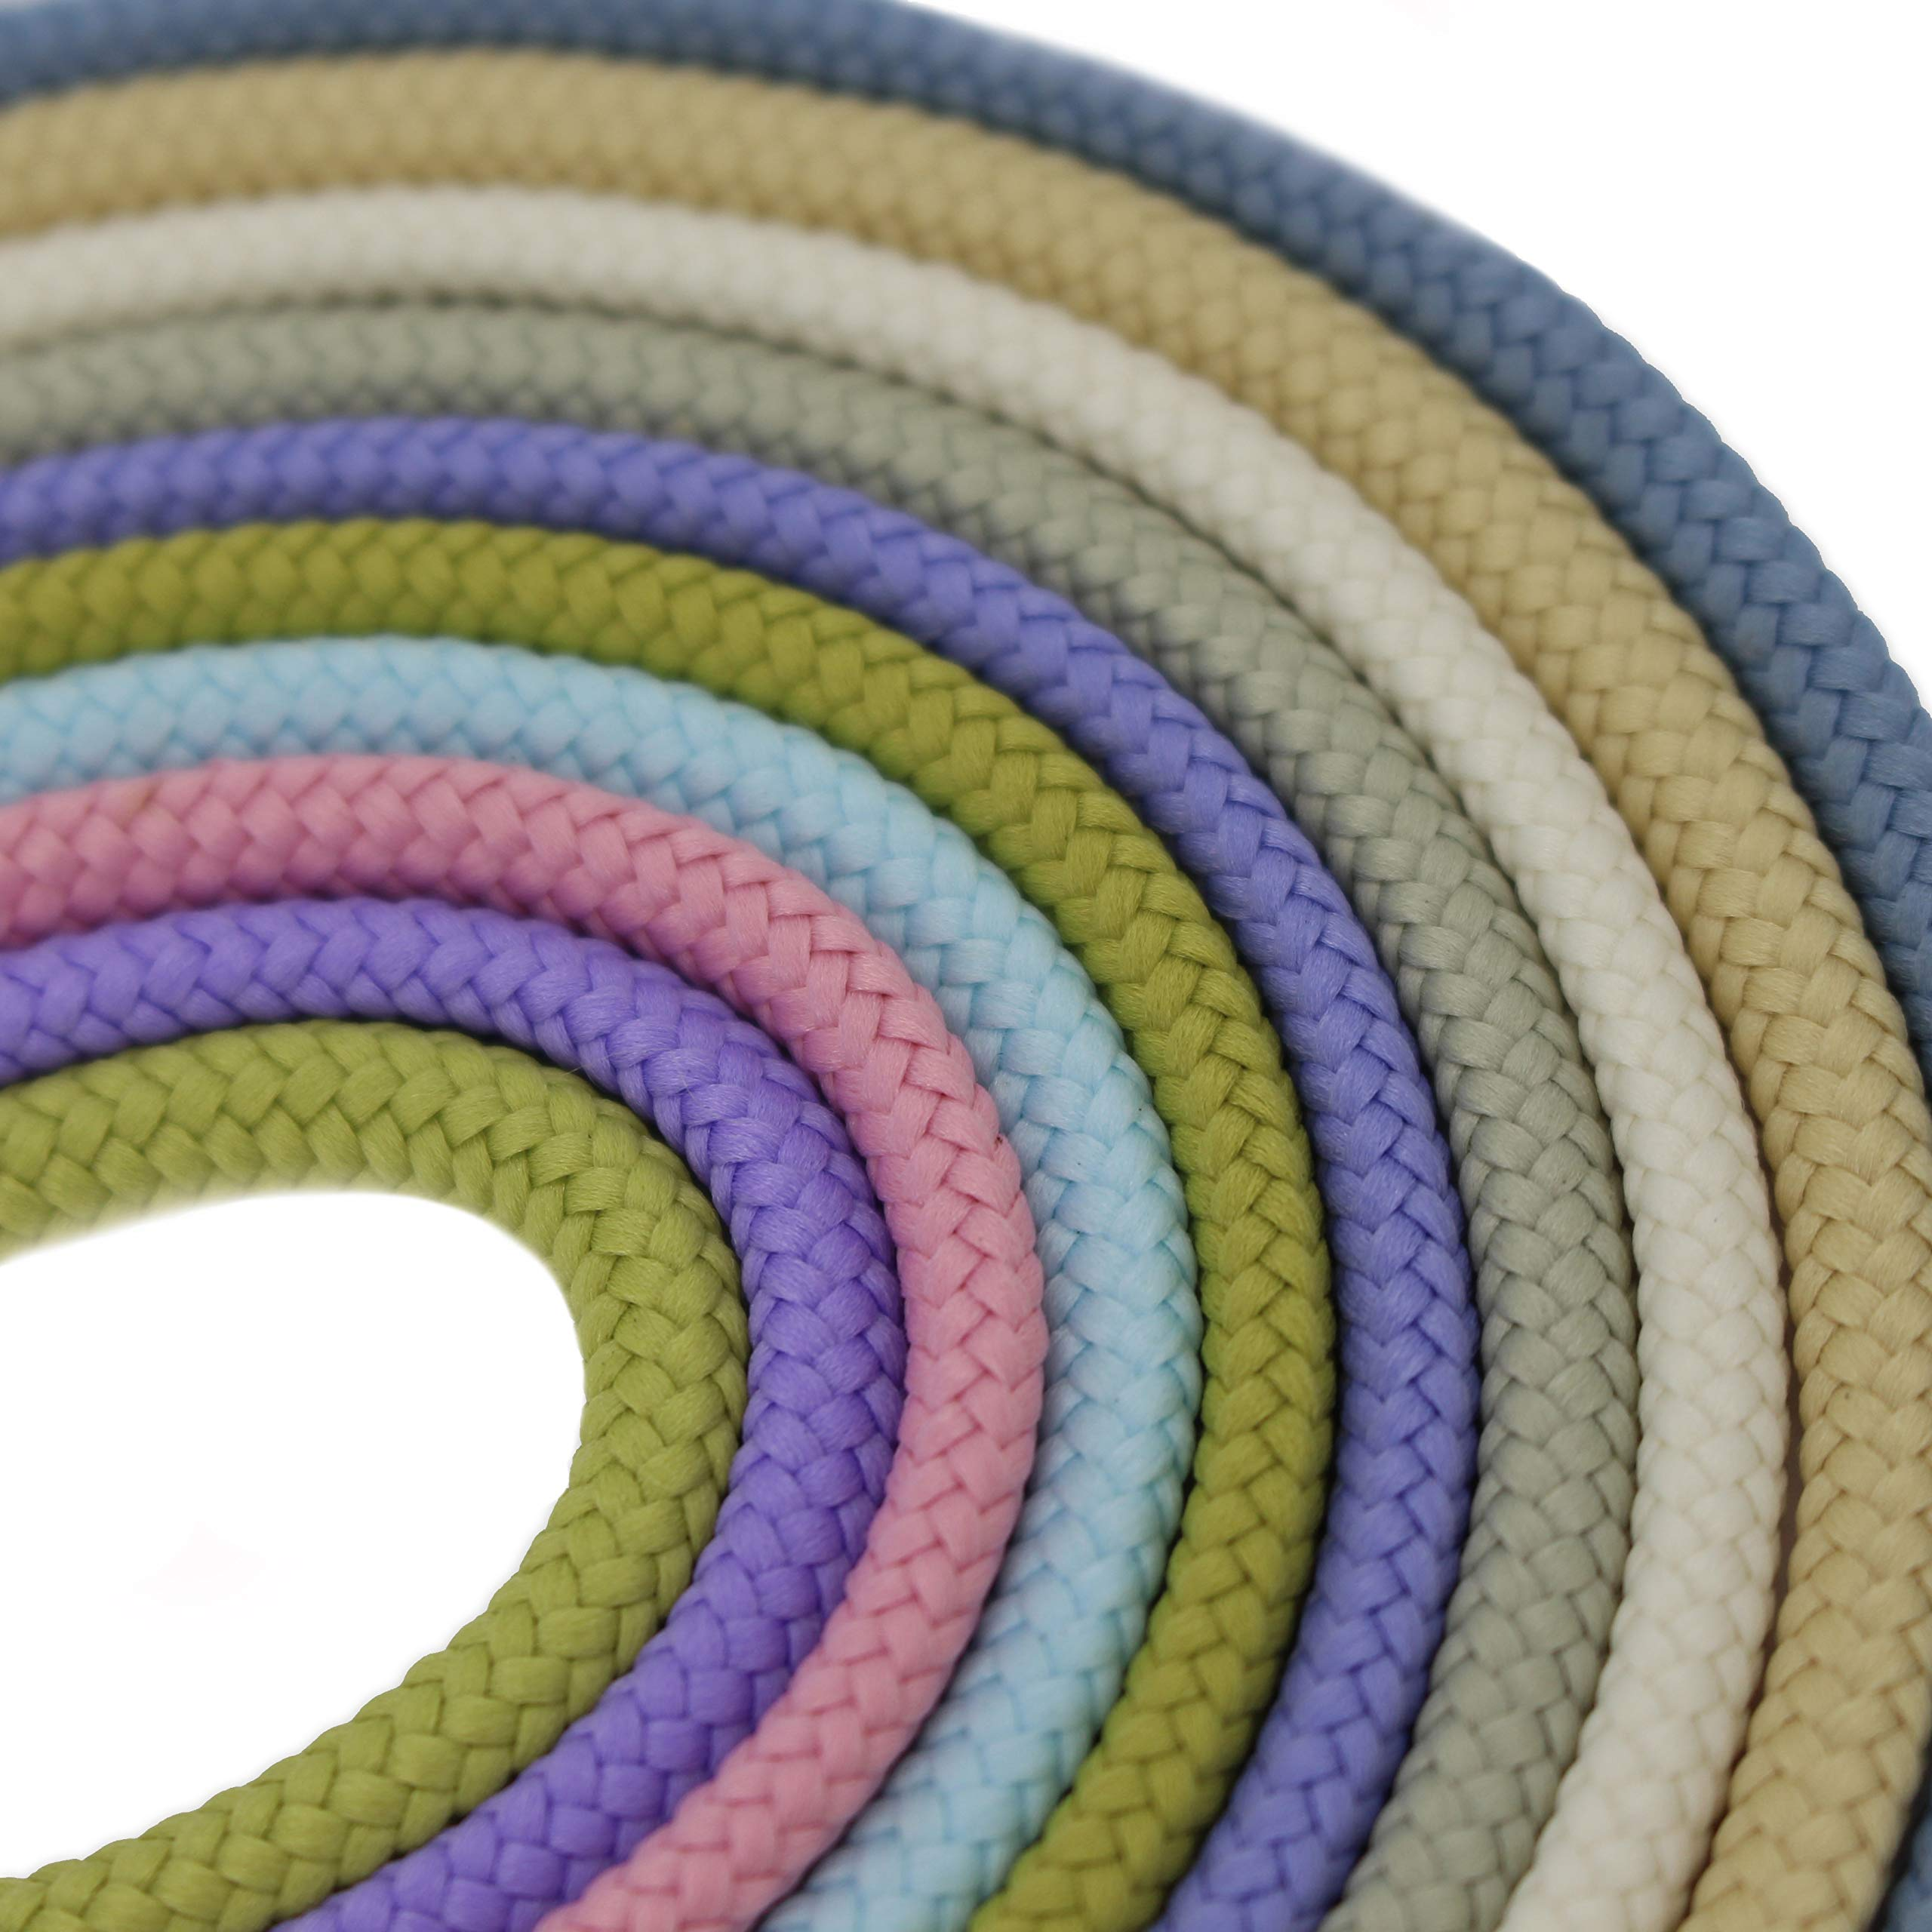 Fincos Cord Strings Rope for Shoes/Luggage/Bag/Case/Garment/Hat/Trousers 10 Colors Mixed 1 Yard Each Or Big Rolls of 100Yards CS-5 - (Color: 301 for 100 Yards) by Fincos (Image #3)